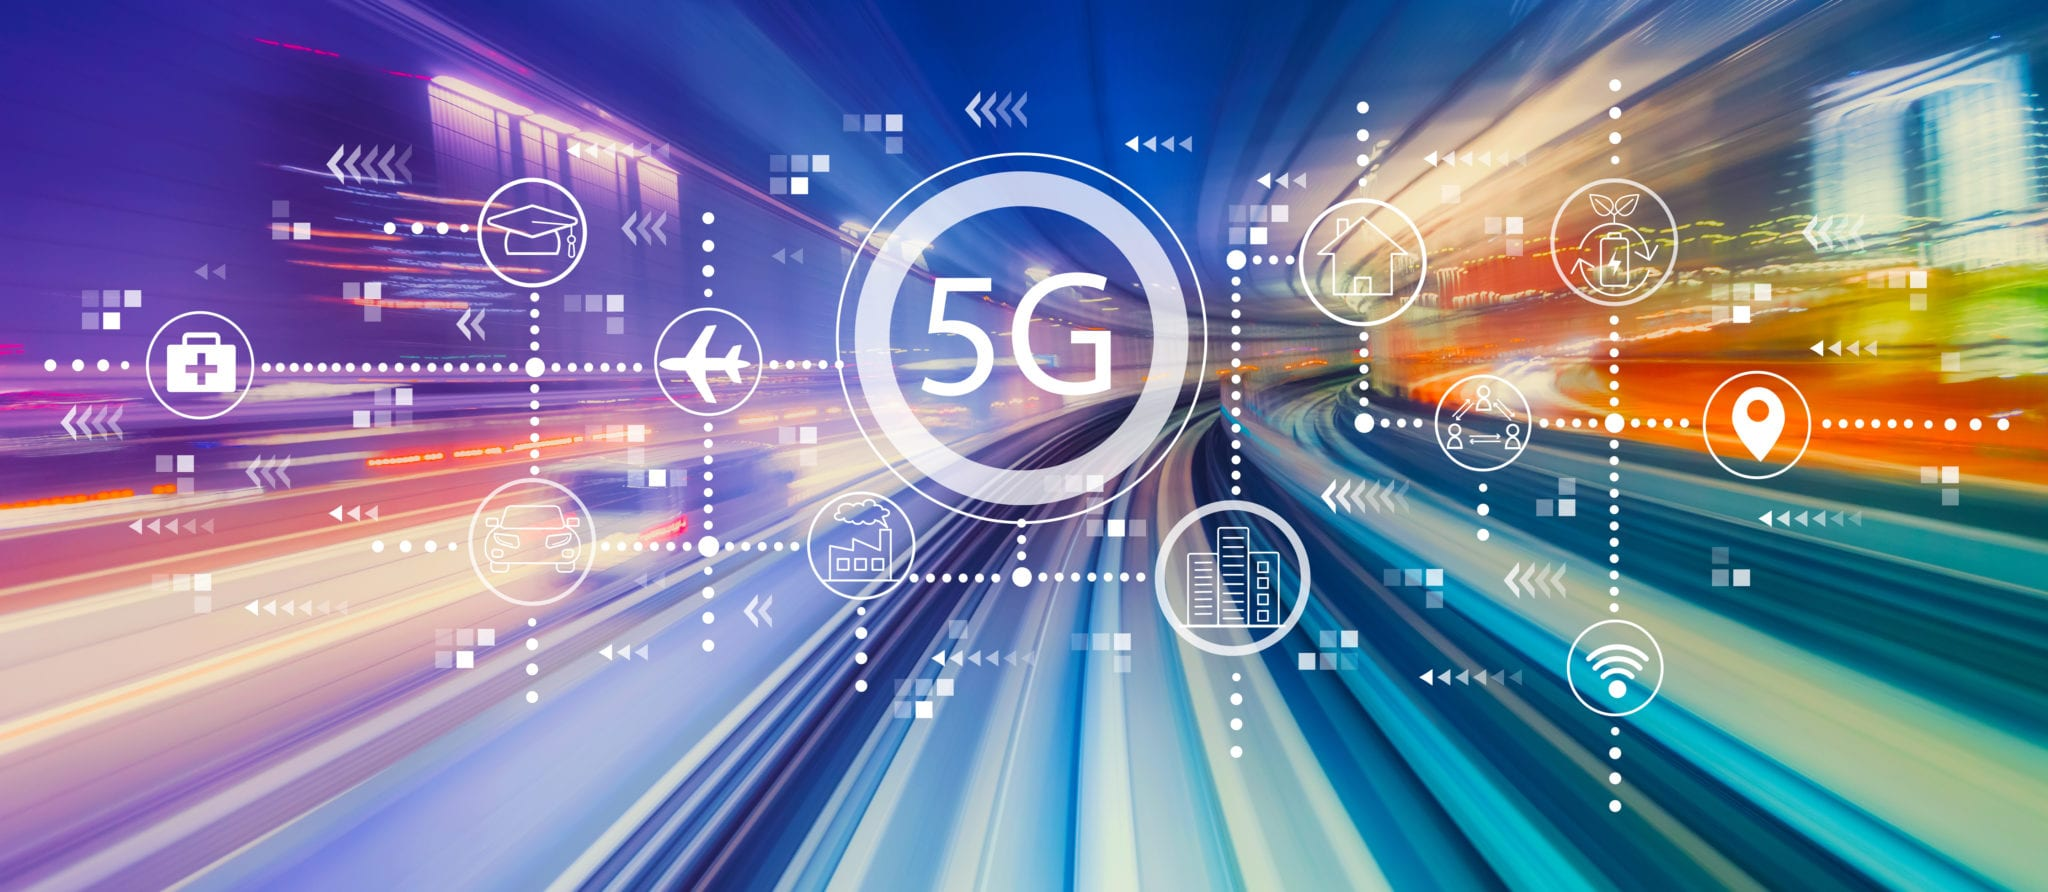 Tapping into Industry 4.0 with 5G private networks (Reader Forum)